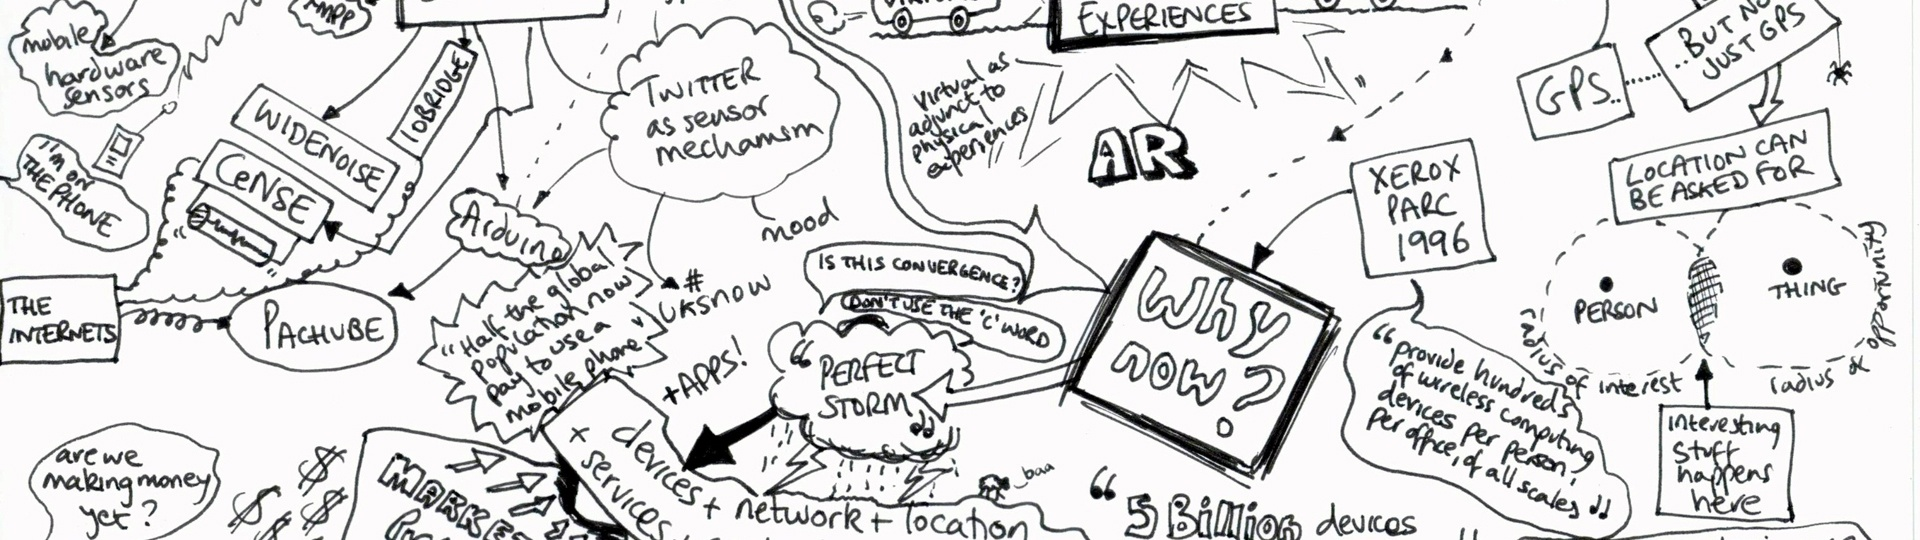 Internet of Things by Jeffrey Zeldman/Flickr, Creative Commons